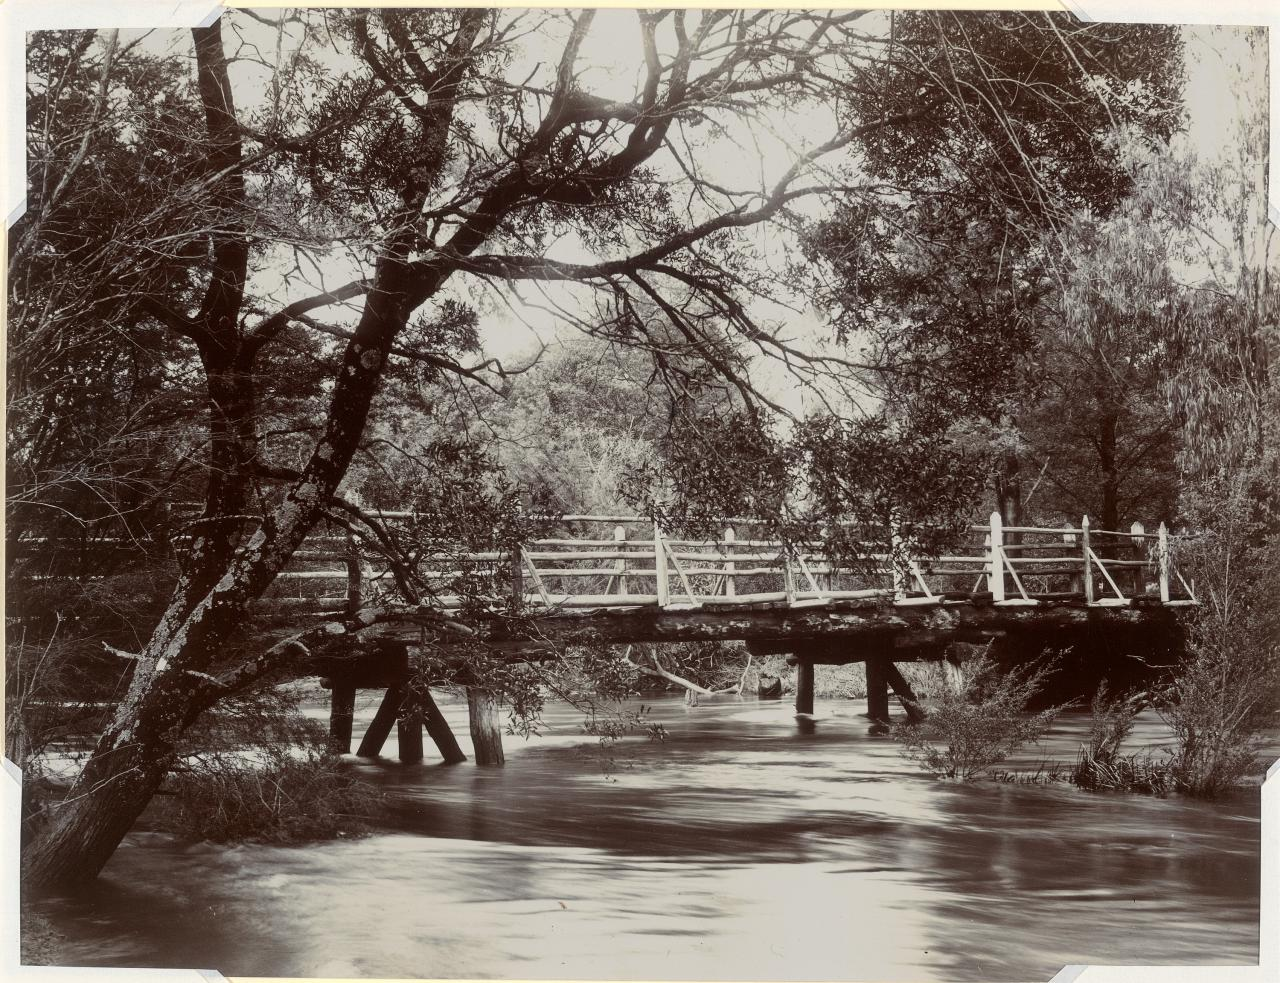 Crossing place at Yarra Doon near Launching Place